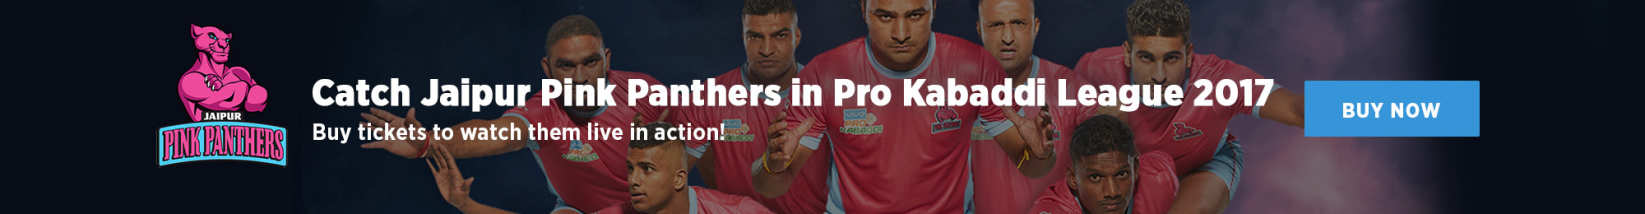 Catch the Jaipur Pink Panthers this Pro Kabaddi League!